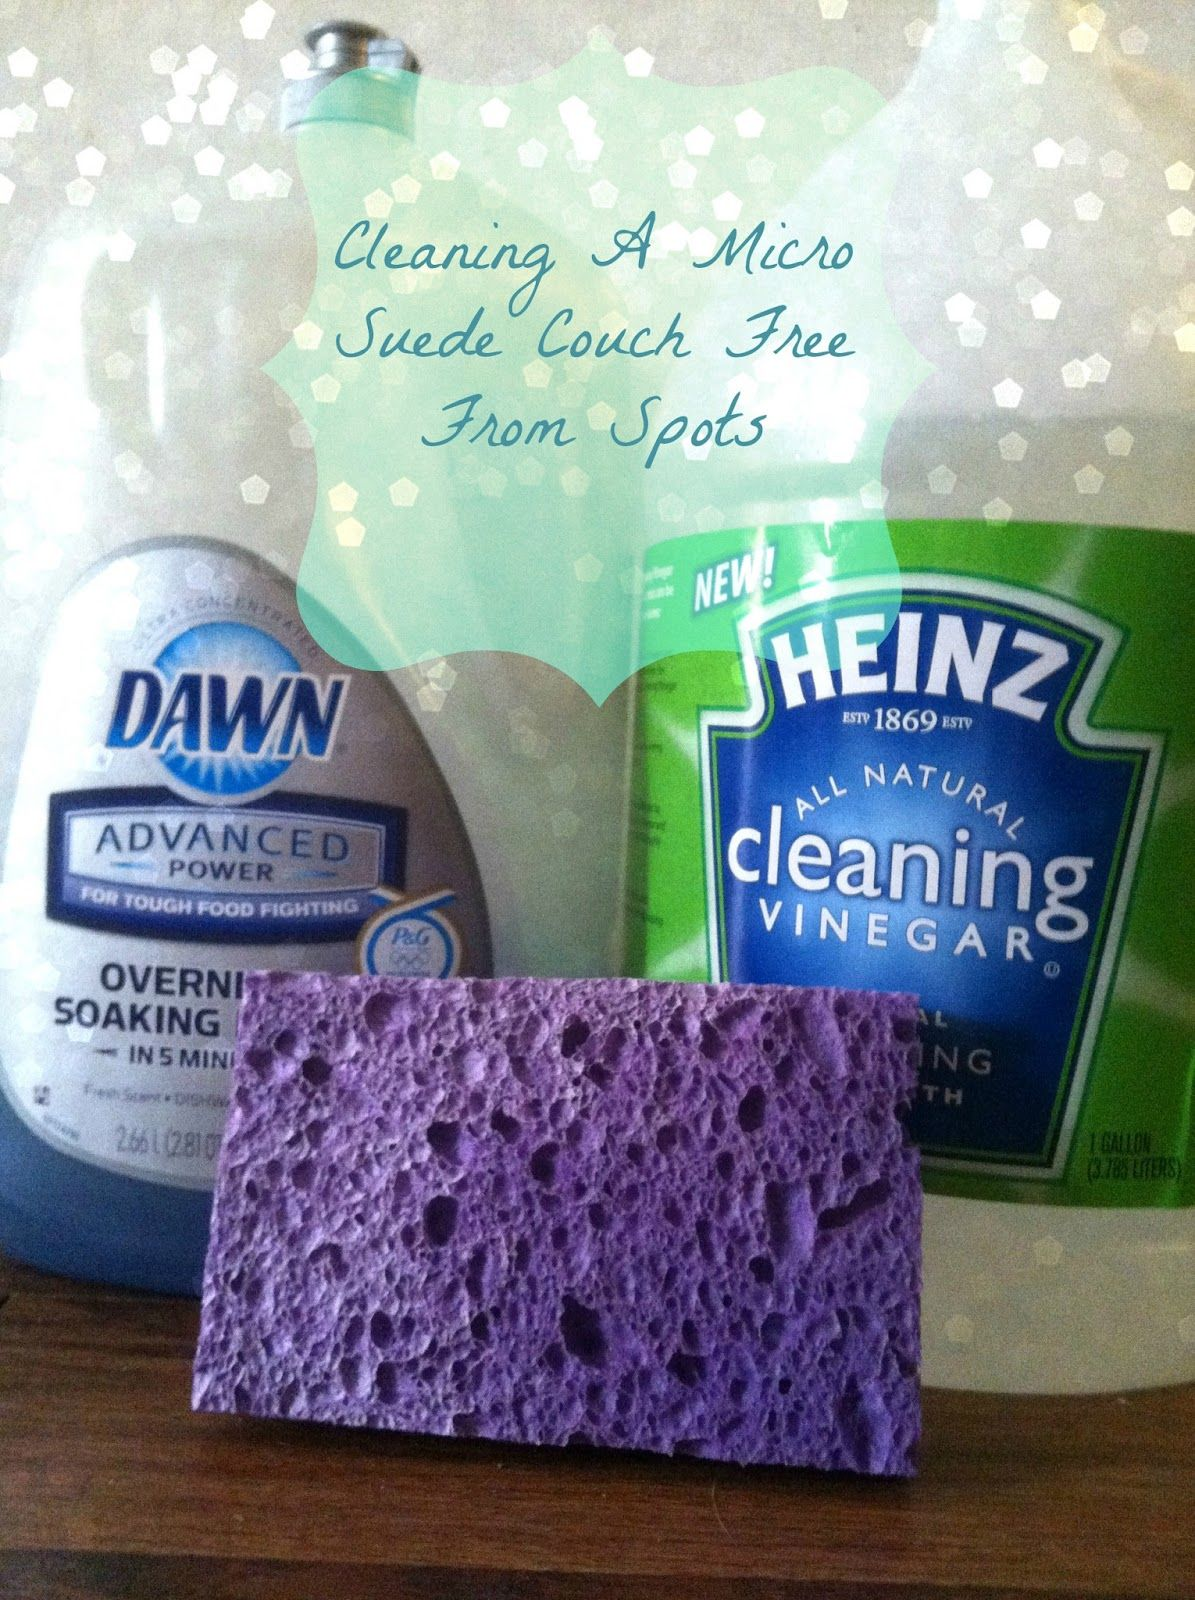 House Of Fuentes How To Clean Your Micro Suede Couch Free From